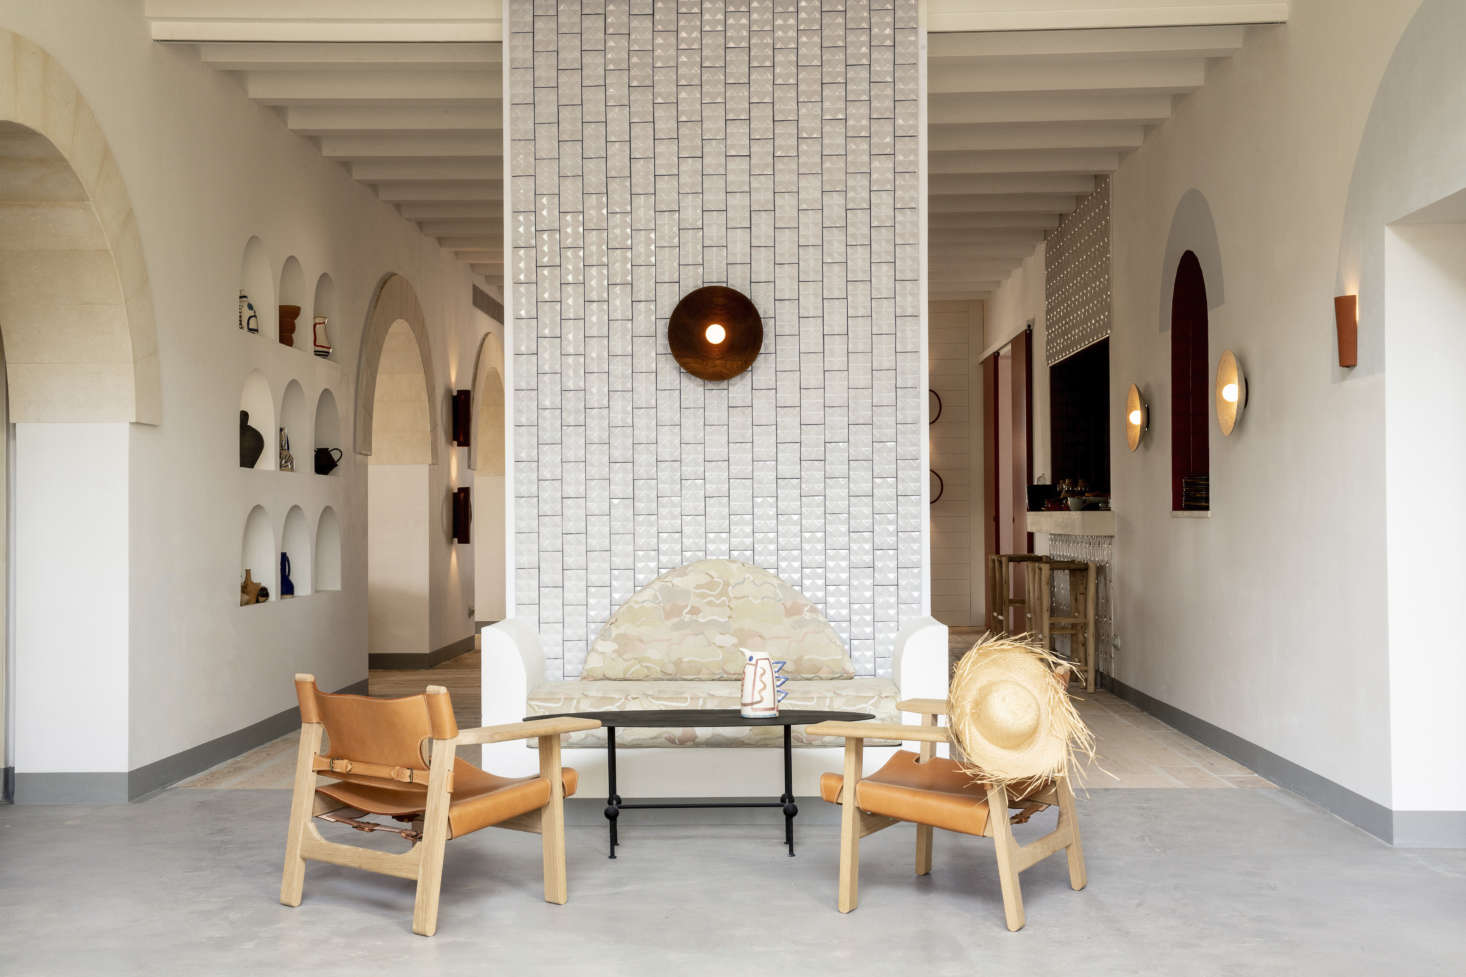 In the lobby, Portuguese tiles line a dividing wall with a seating ensemble that includes Borge Mogensen Spanish Chairs and a concrete banquette that echoes the lines of the surrounding archways. Meilichzon put teams of local craftsmen to work on the custom furnishings.